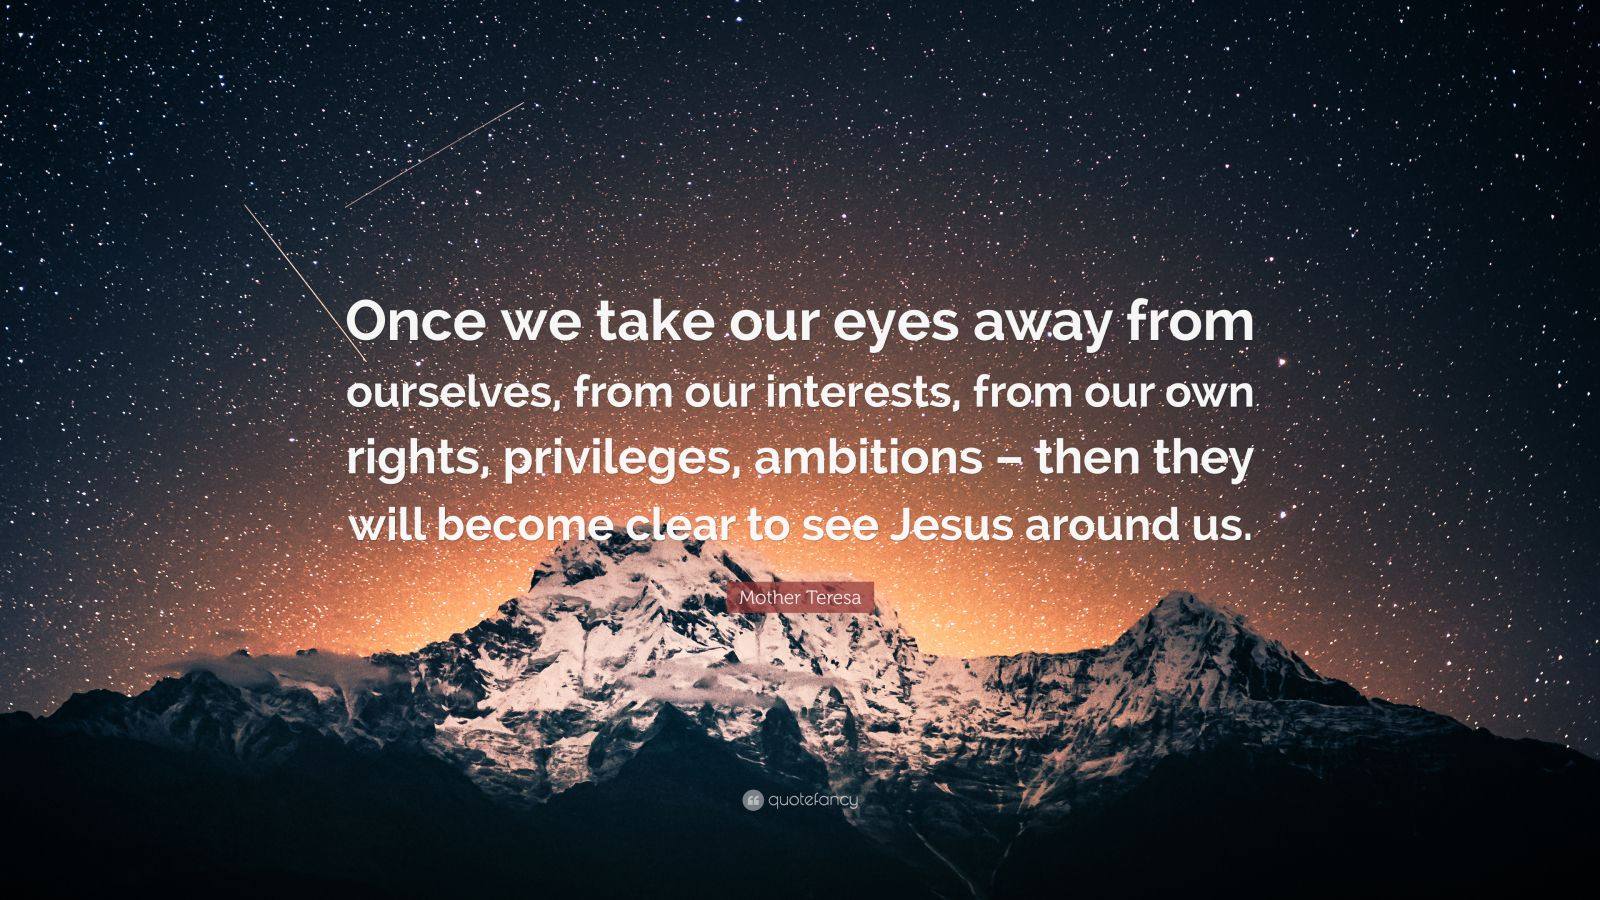 """Mother Teresa Quote: """"Once we take our eyes away from ourselves, from our interests, from our own rights, privileges, ambitions – then they will become clear to see Jesus around us."""""""